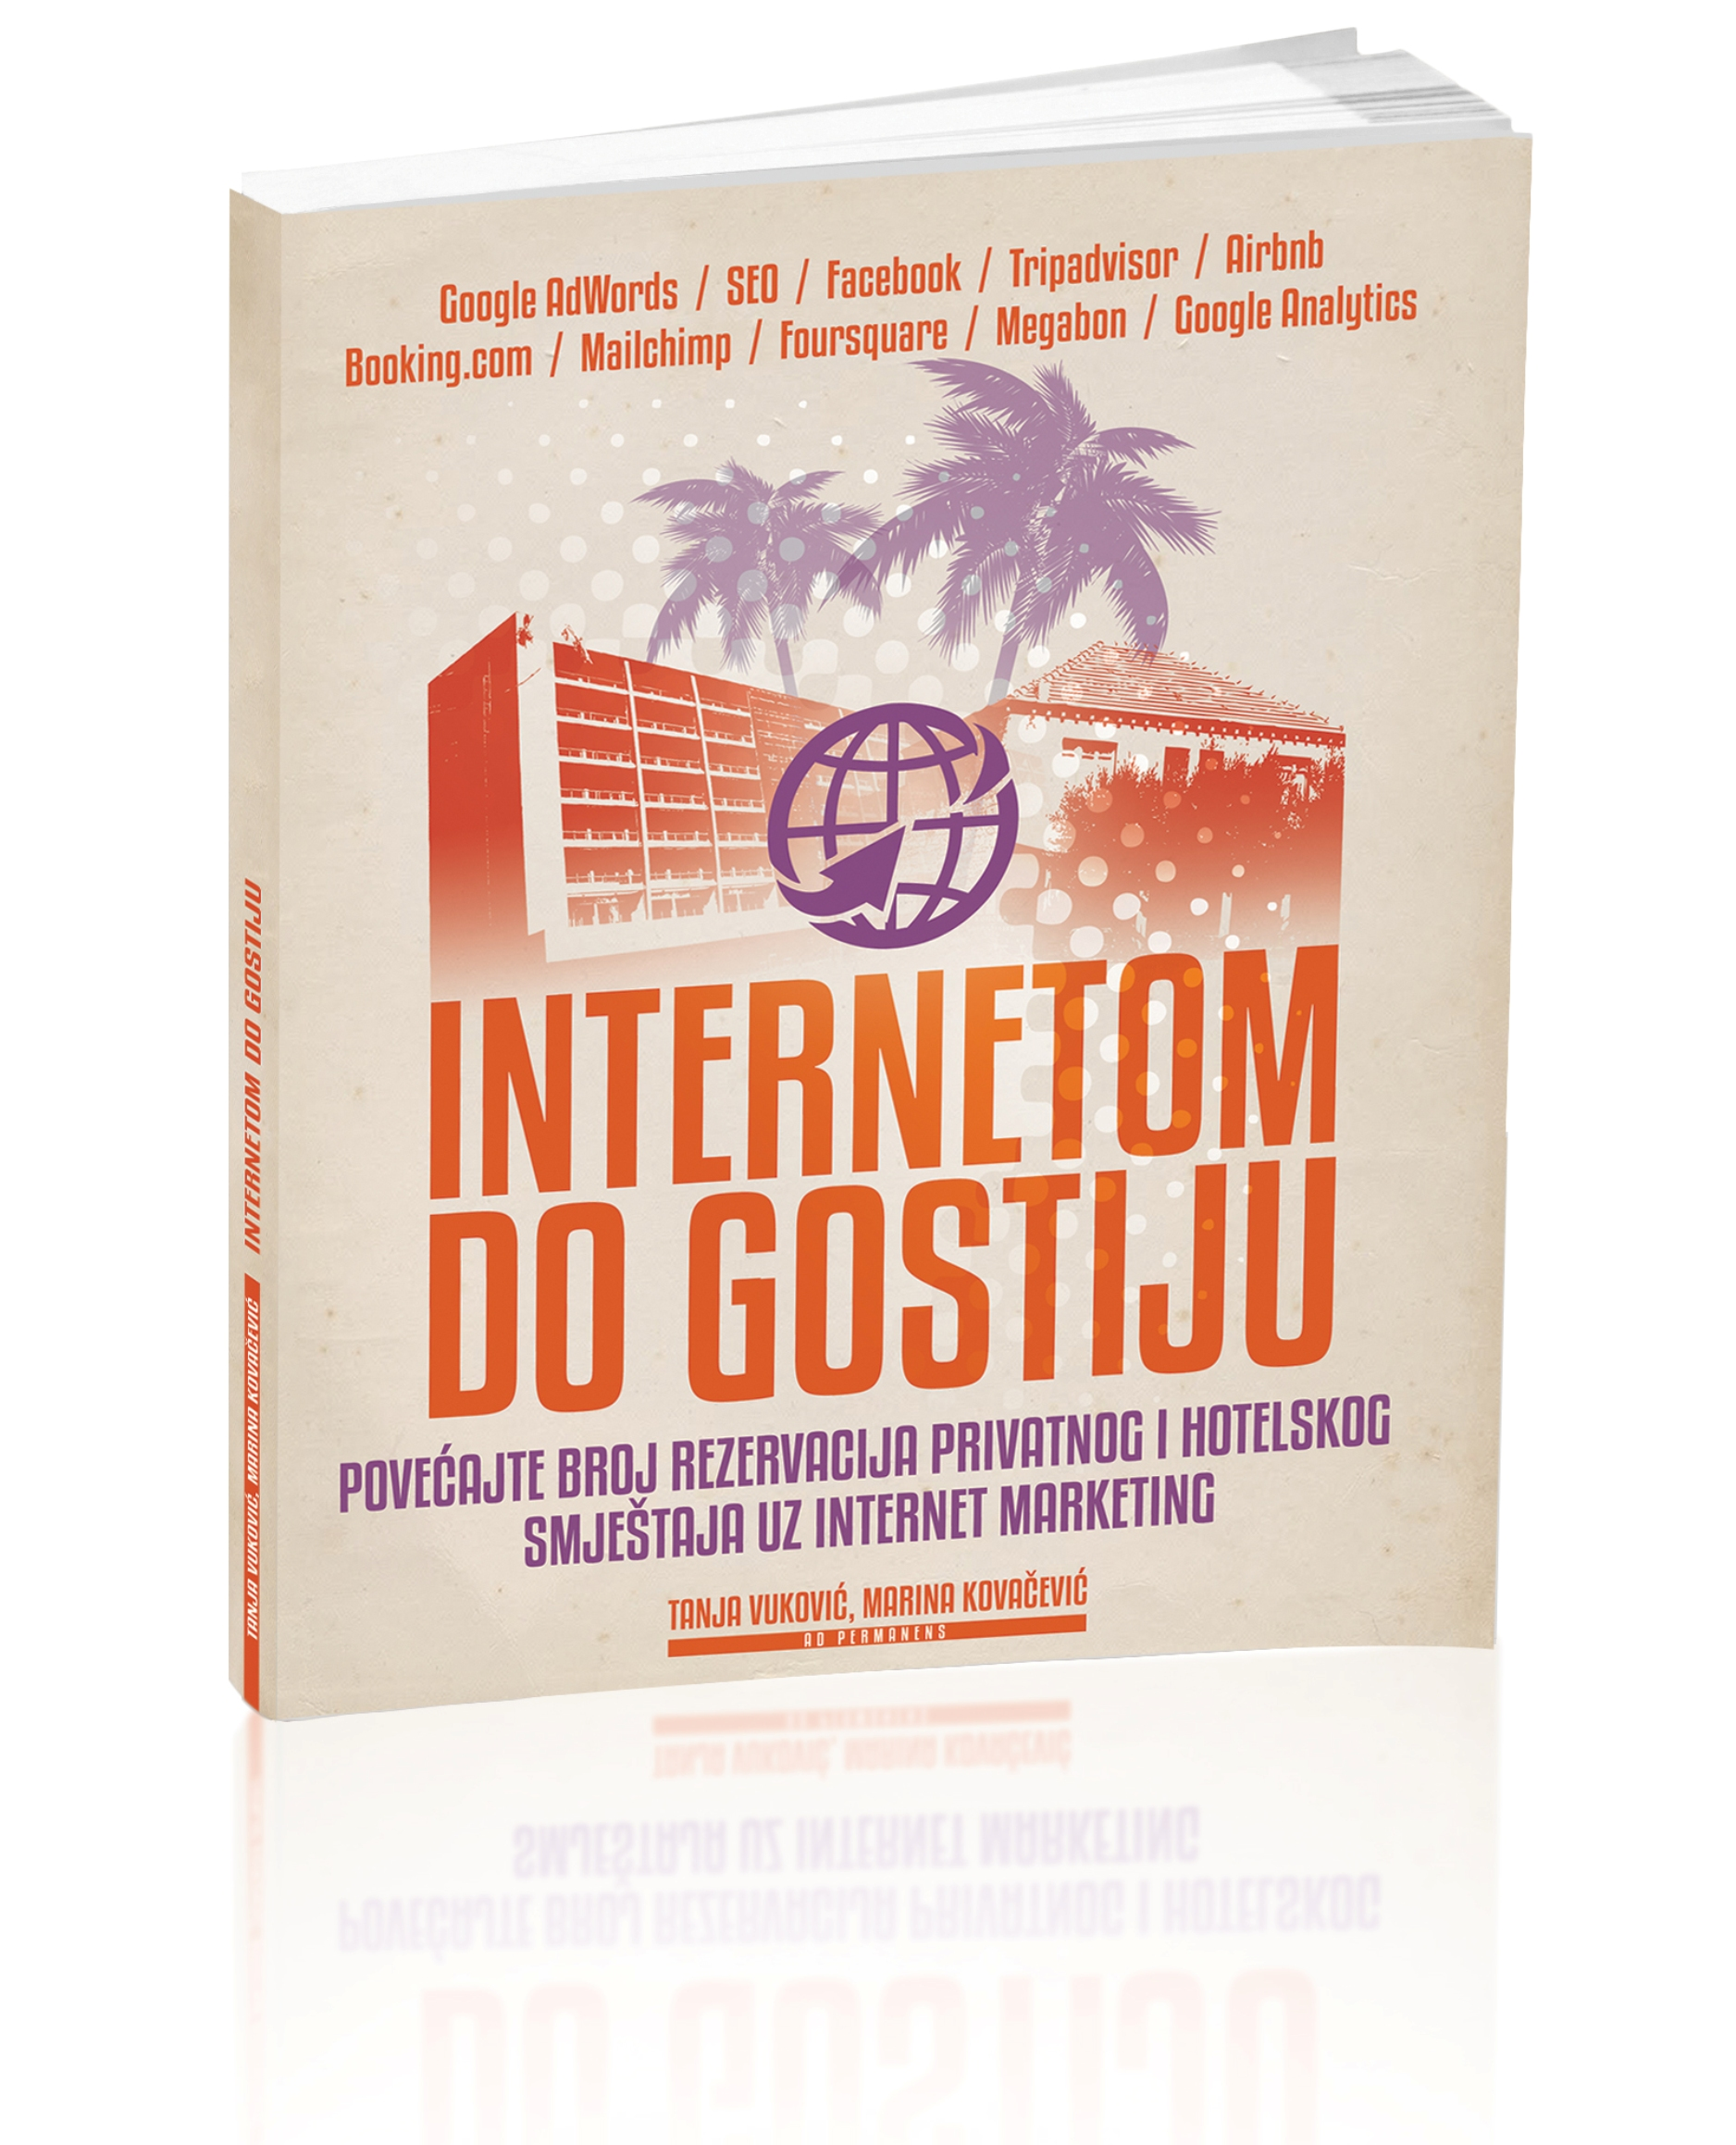 INTERNETOM DO GOSTIJU